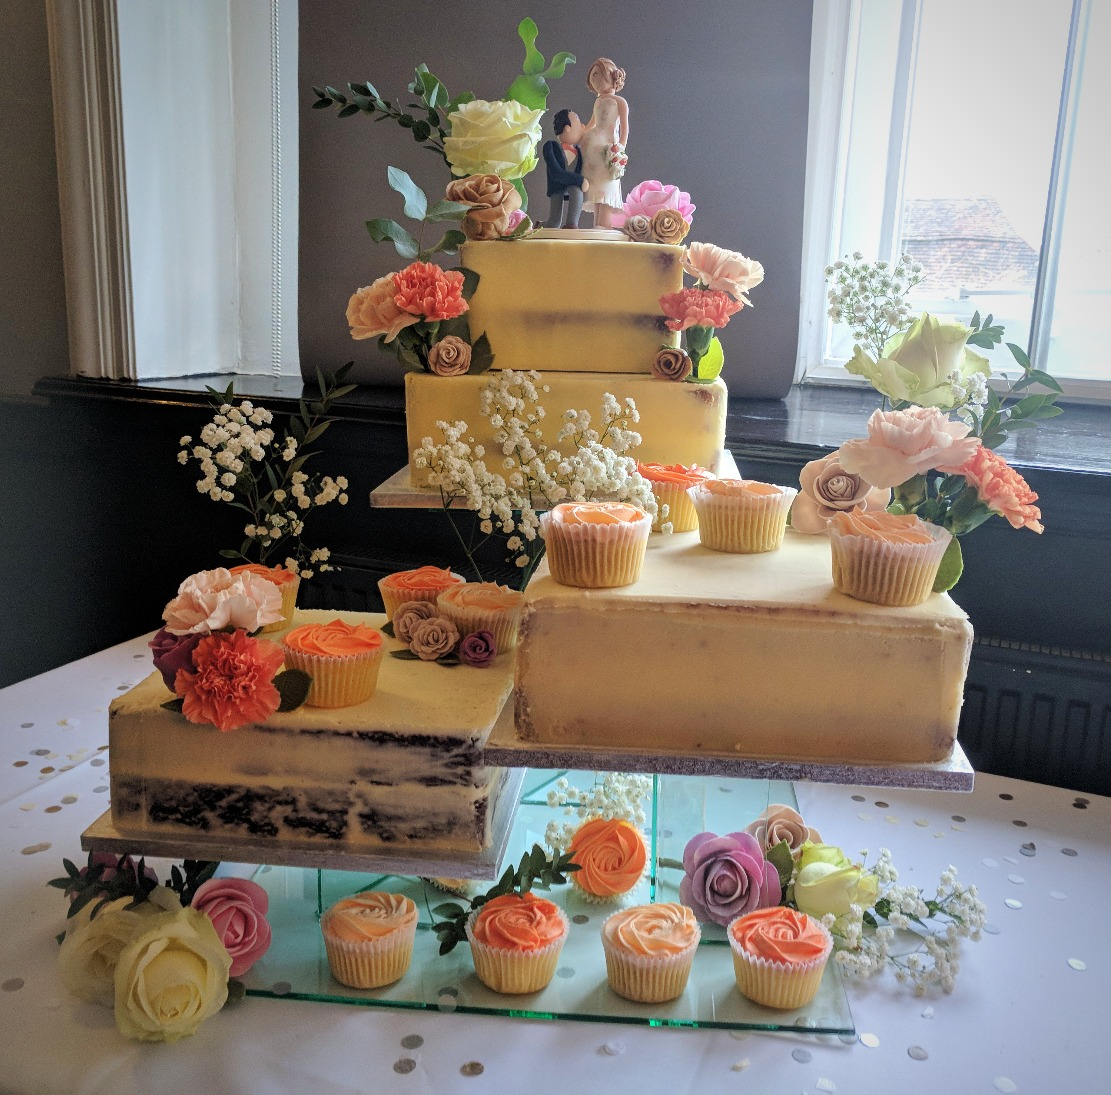 4 Tiers with Cupcakes, Real & Sugarp